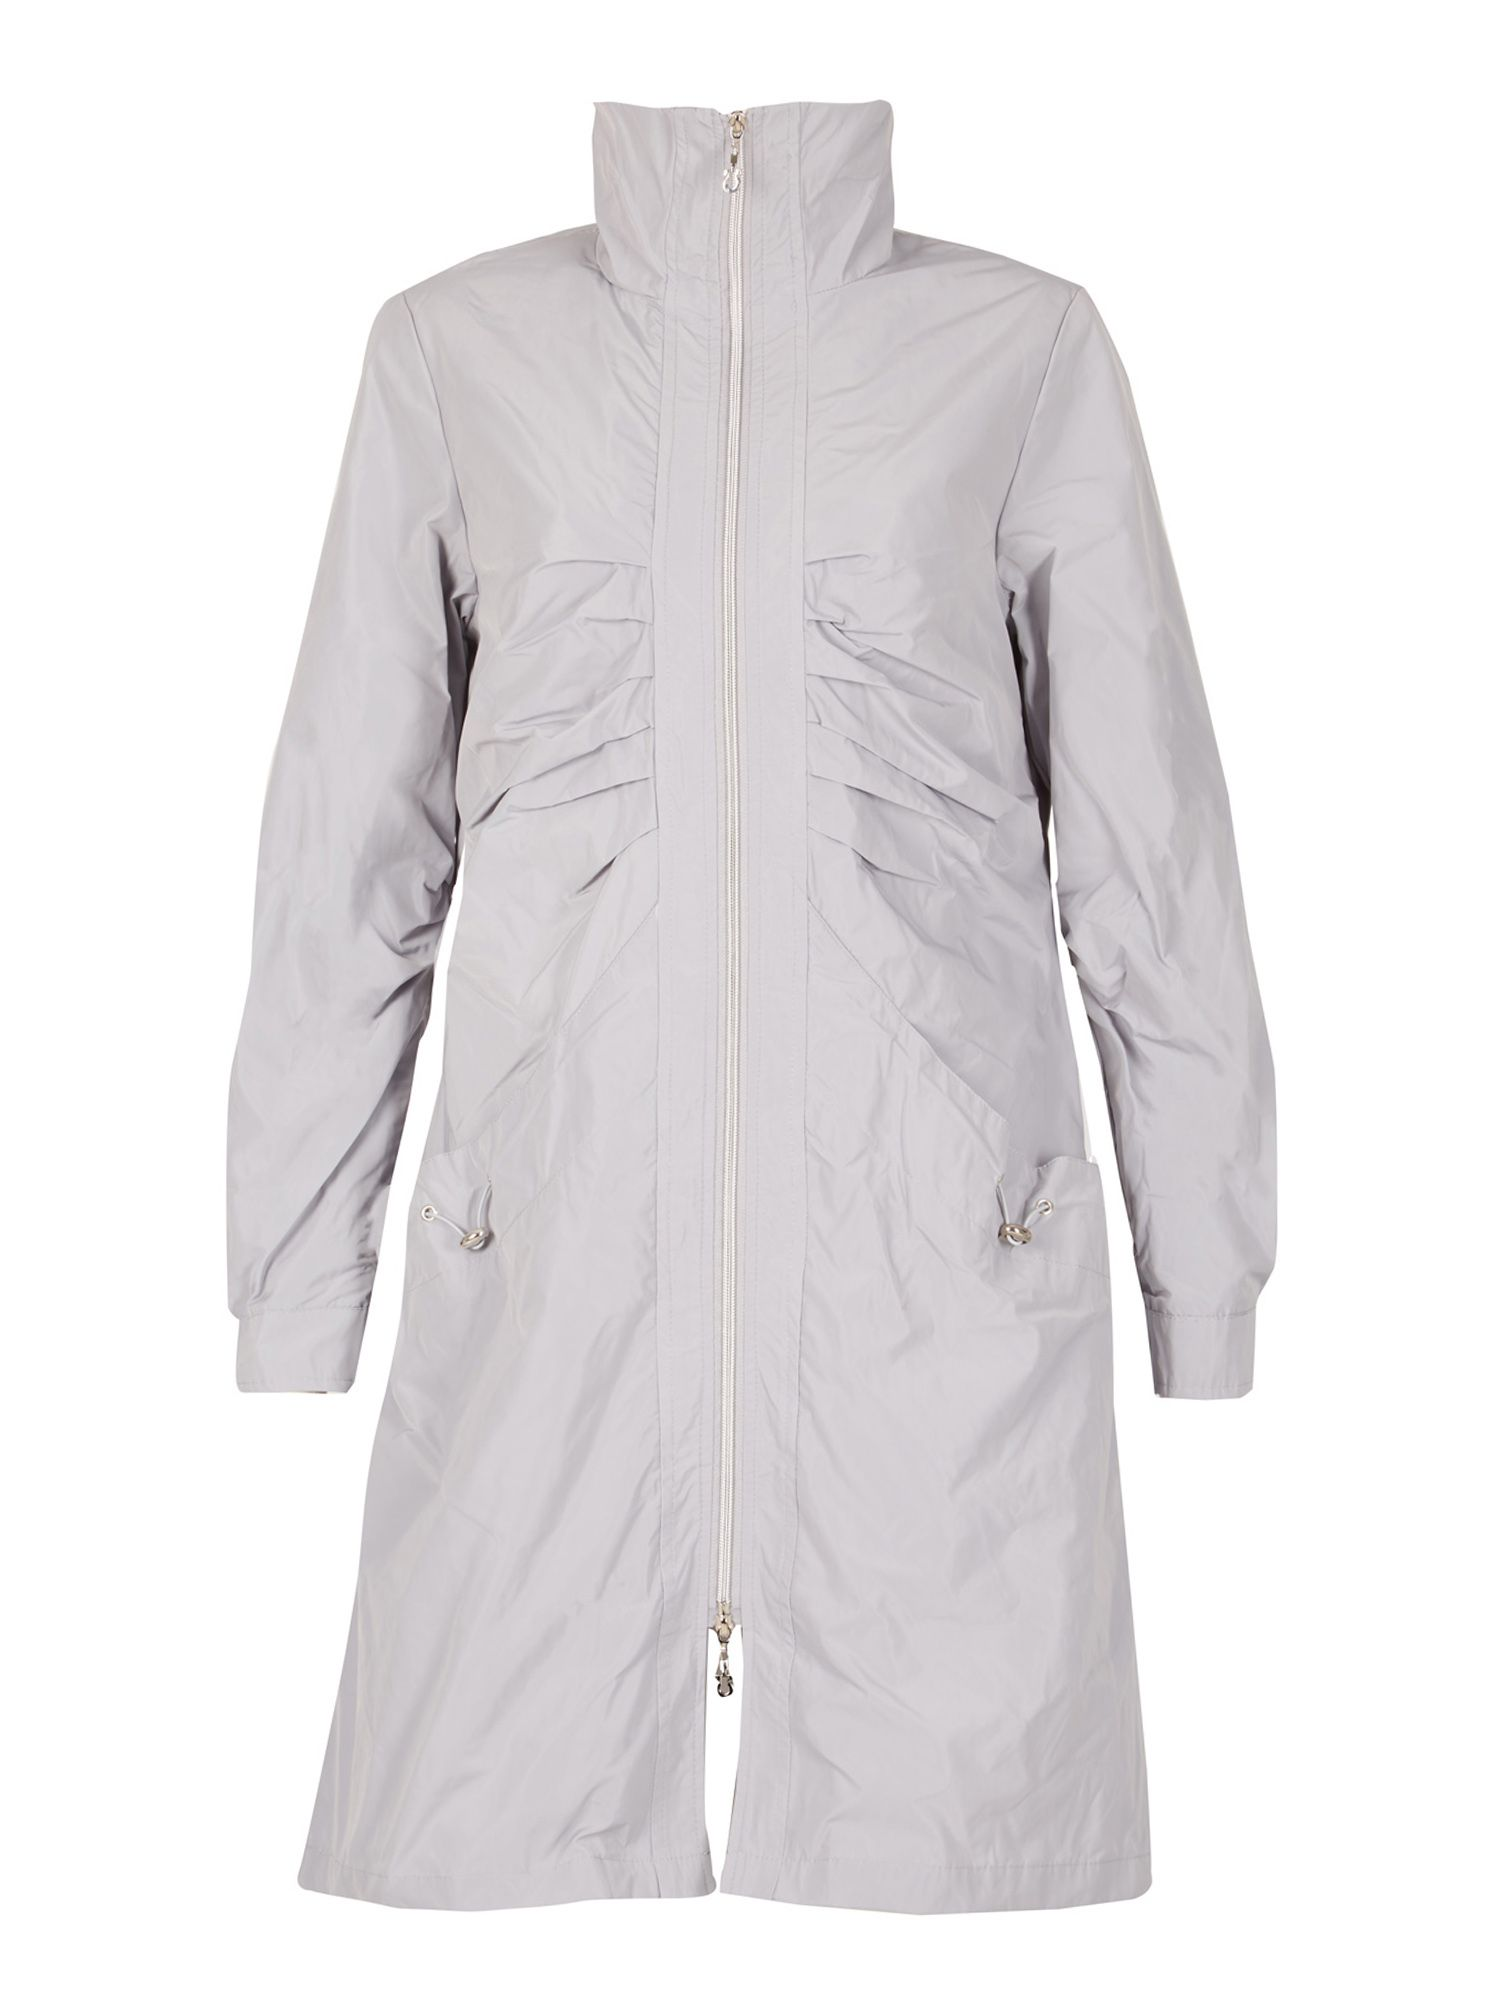 David Barry Ladies Raincoat, Silver